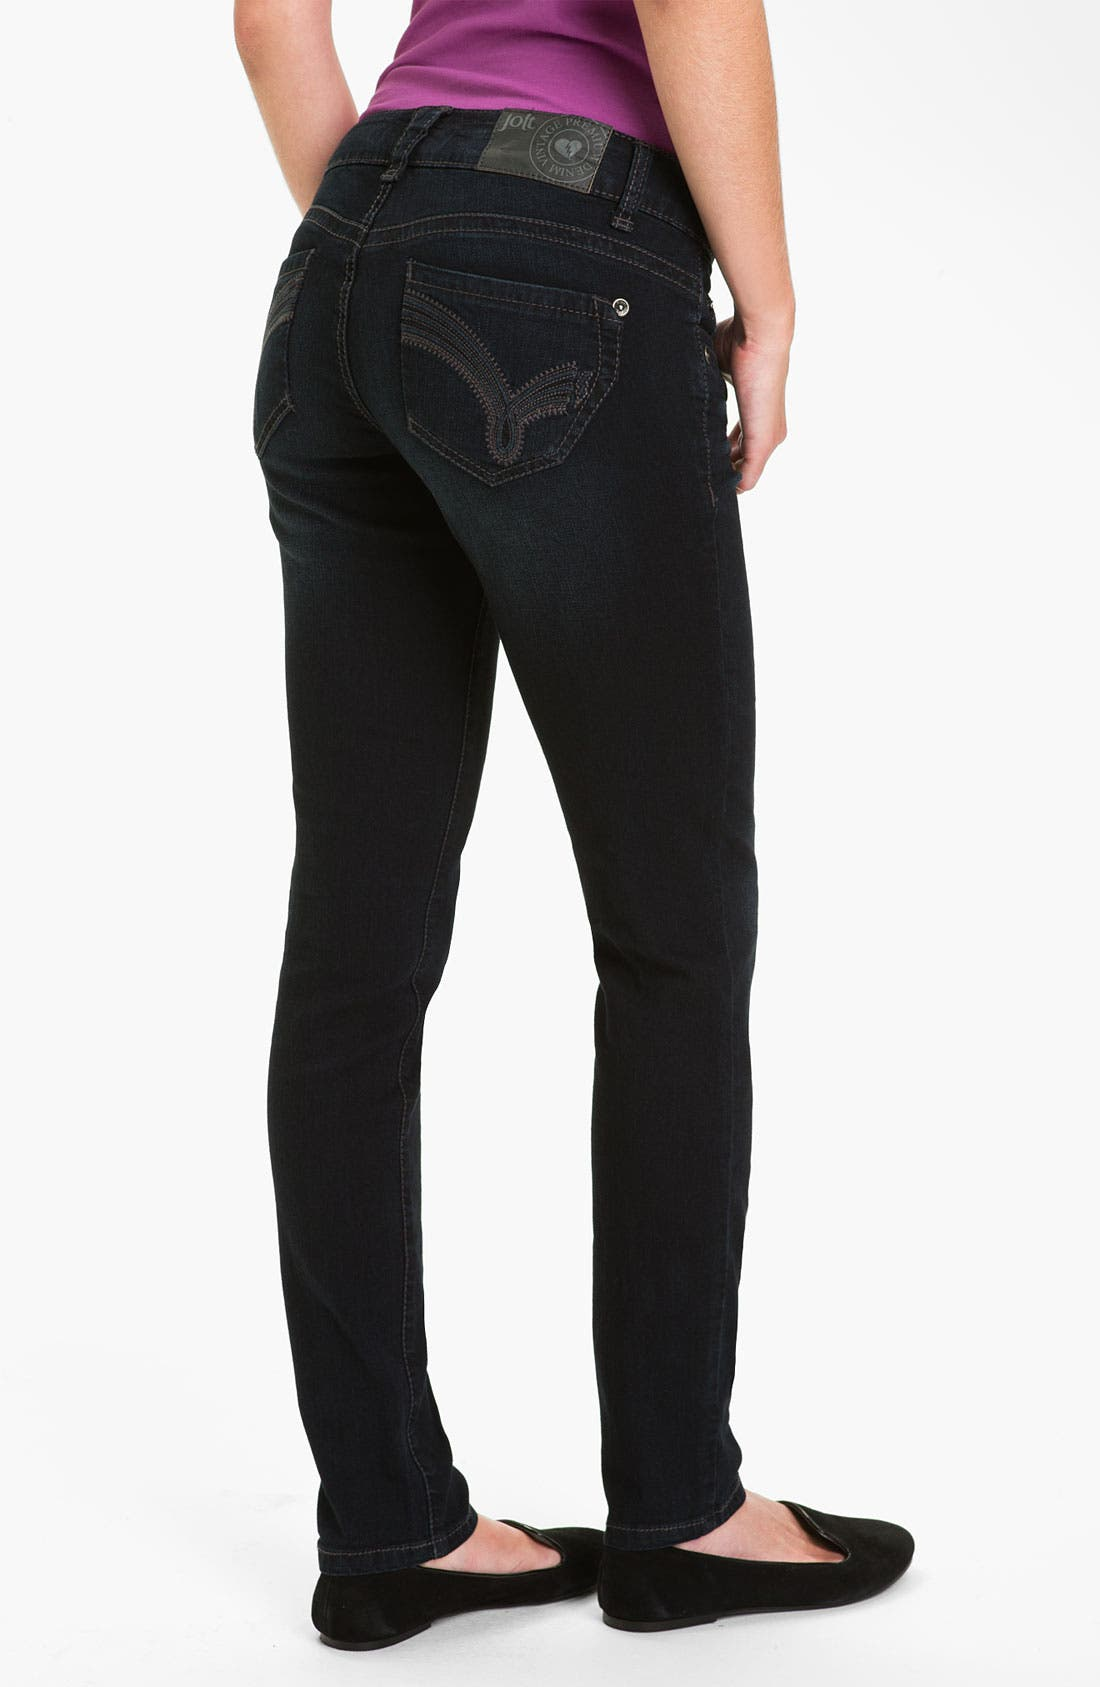 Main Image - Jolt 'J Pocket' Skinny Jeans (Juniors)